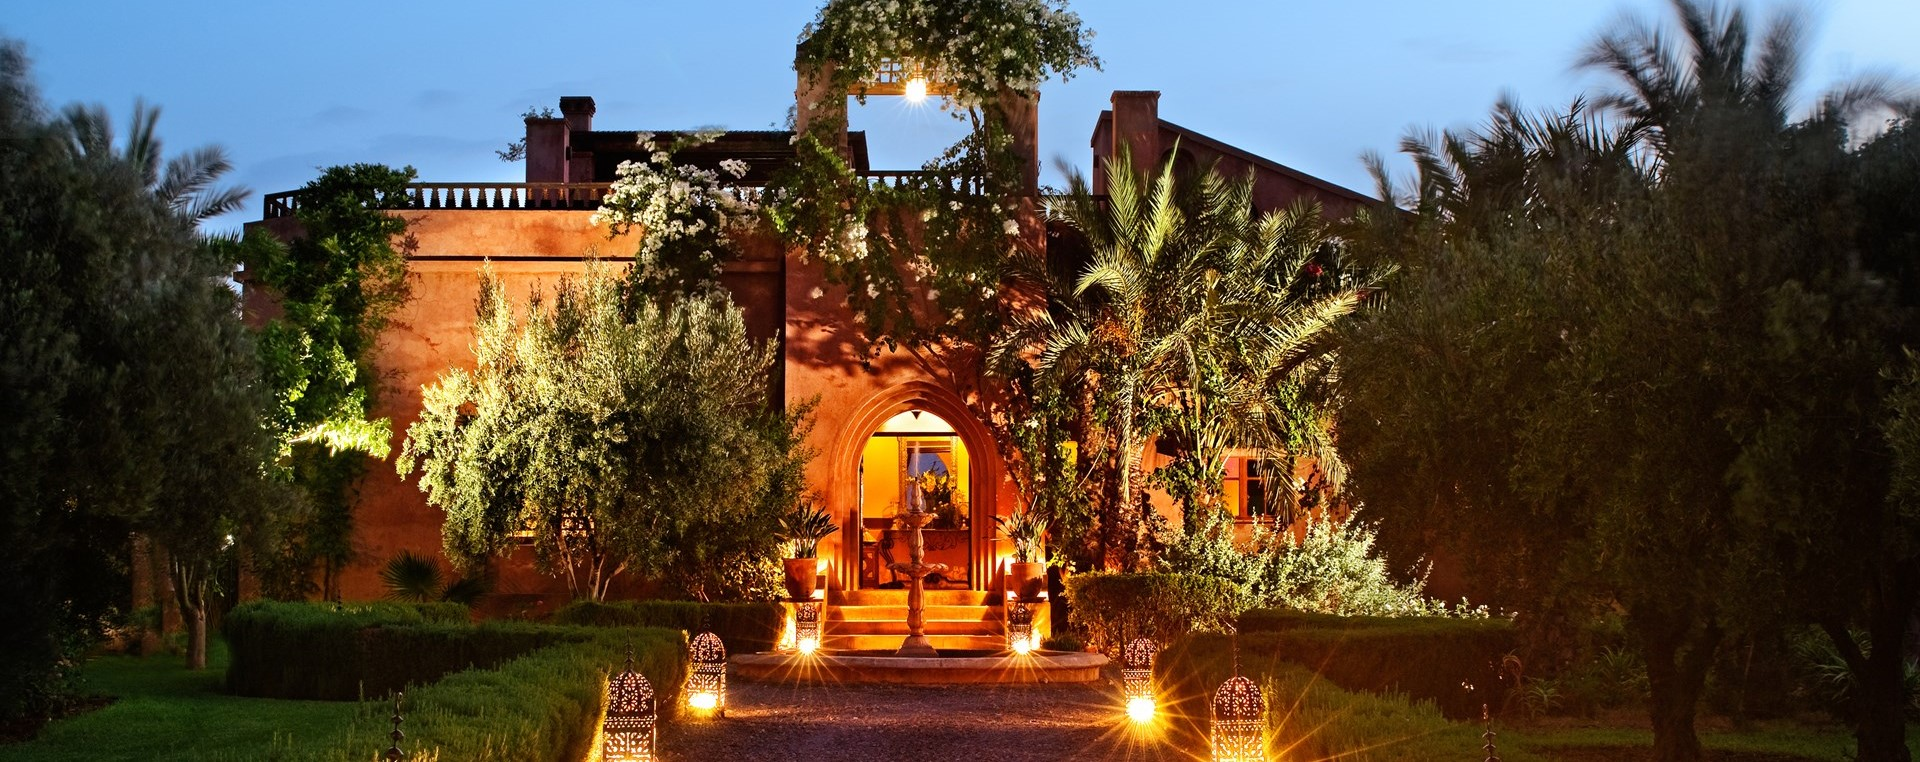 arriving-at-villa-alexandra-marrakech